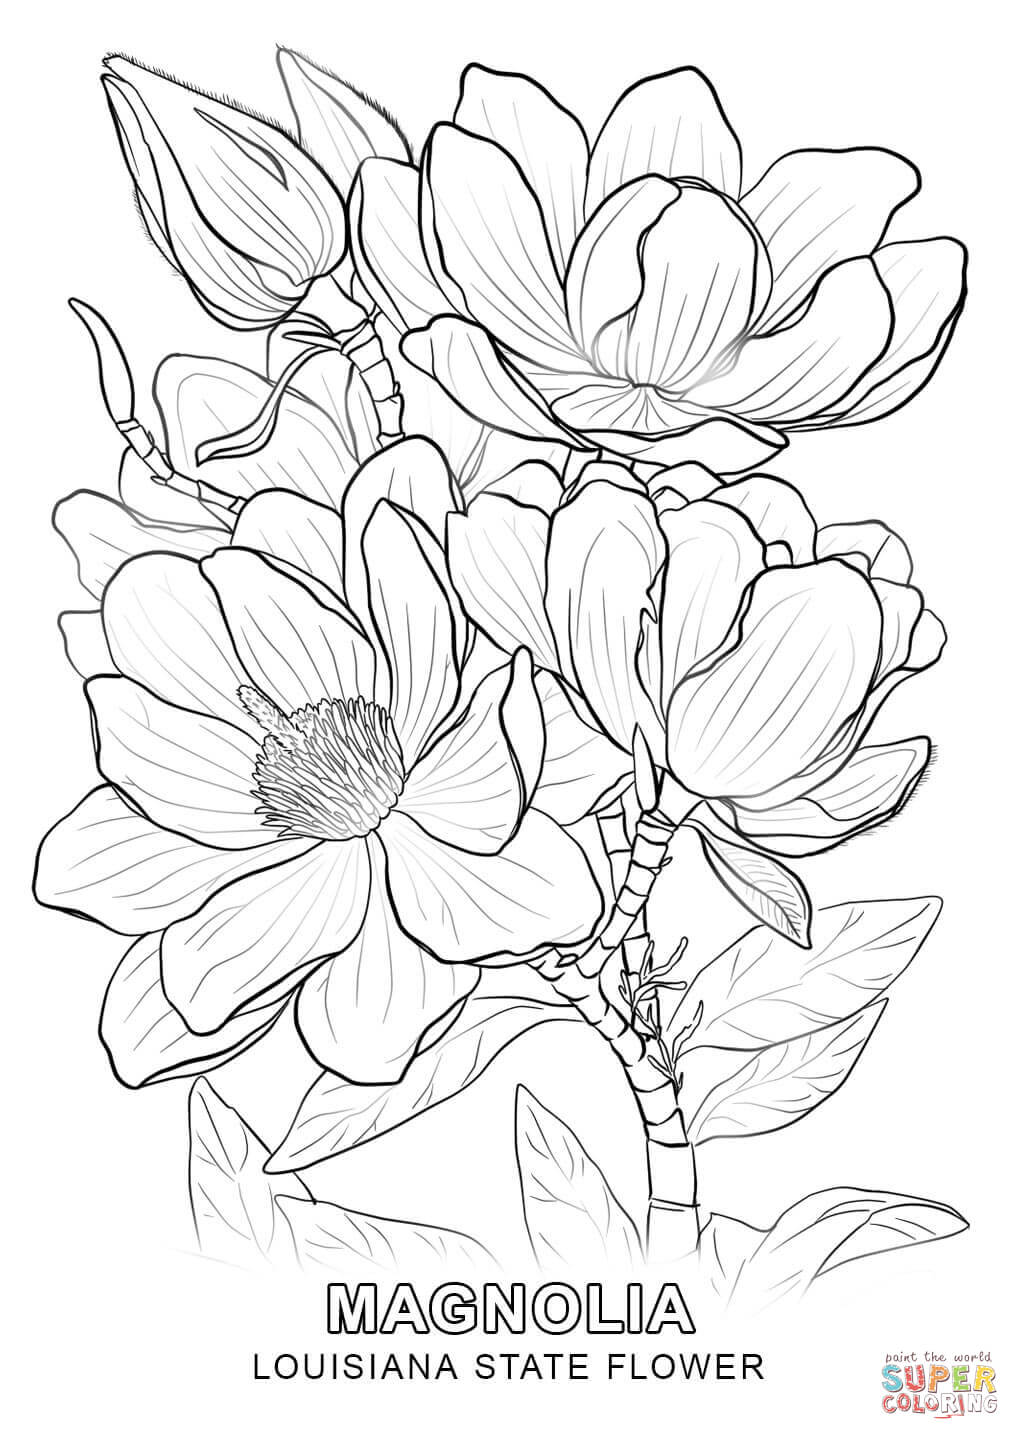 louisiana coloring pages louisiana purchase coloring page louisiana purchase coloring pages louisiana